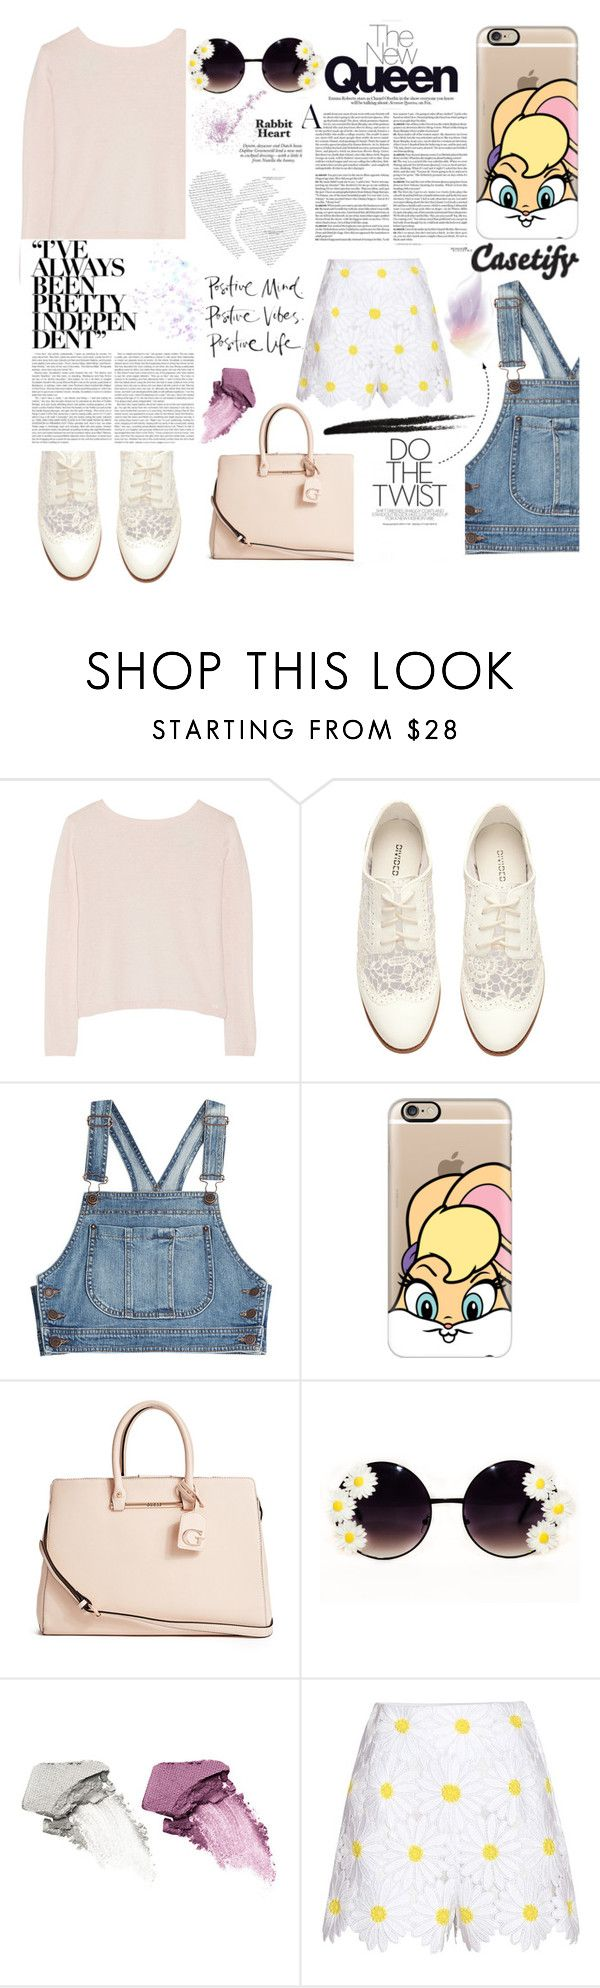 """casetify.com /// looney tunes. <3"" by tatjana ❤ liked on Polyvore featuring Banjo & Matilda, H&M, Moschino, Casetify, GUESS, Dolce Vita, NARS Cosmetics, Dolce&Gabbana, women's clothing and women's fashion"